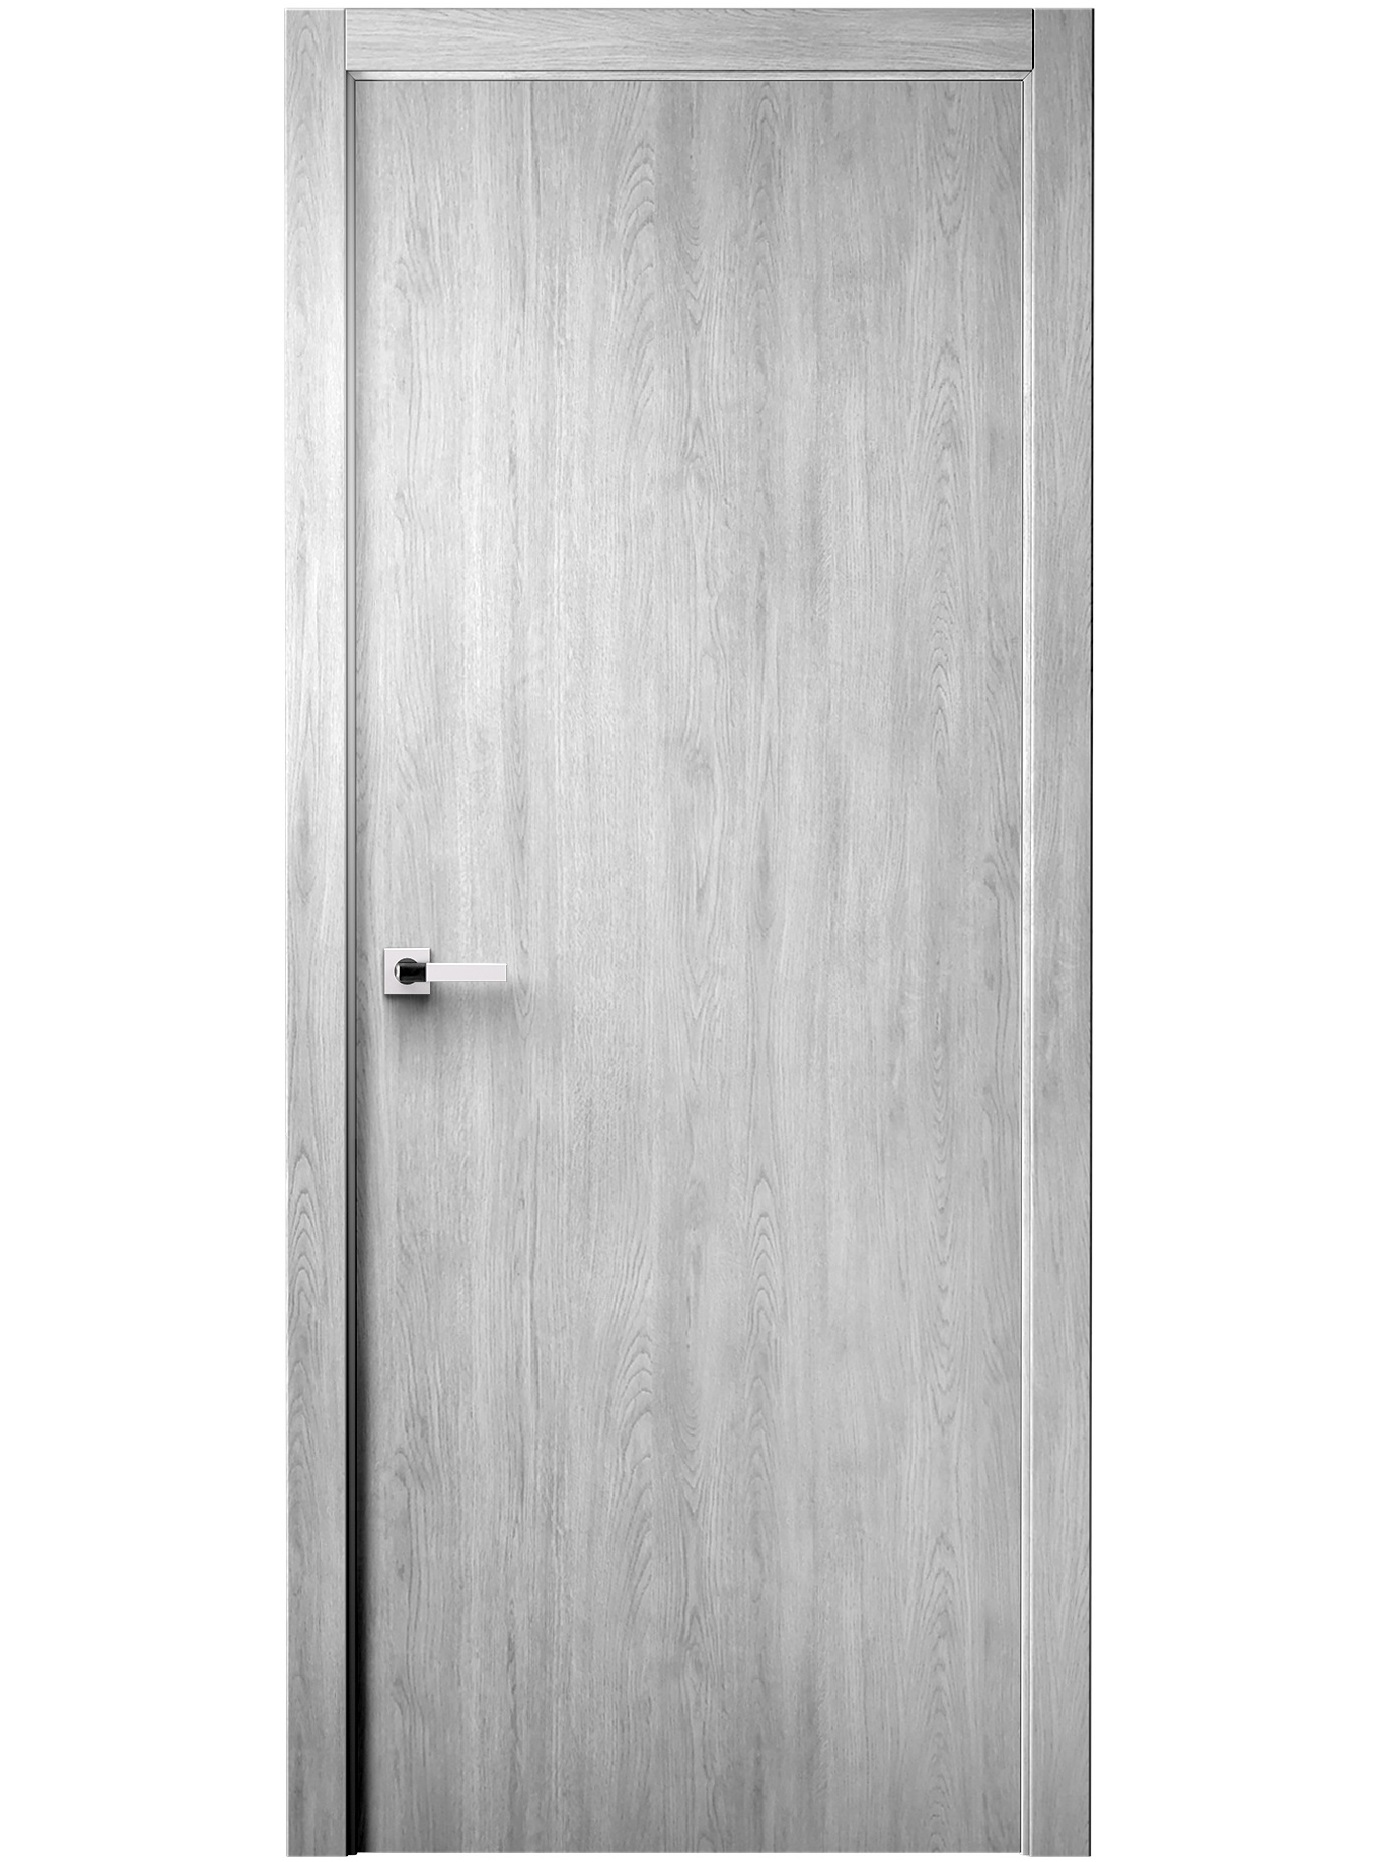 Image Unica Interior Door Gray Oak 0